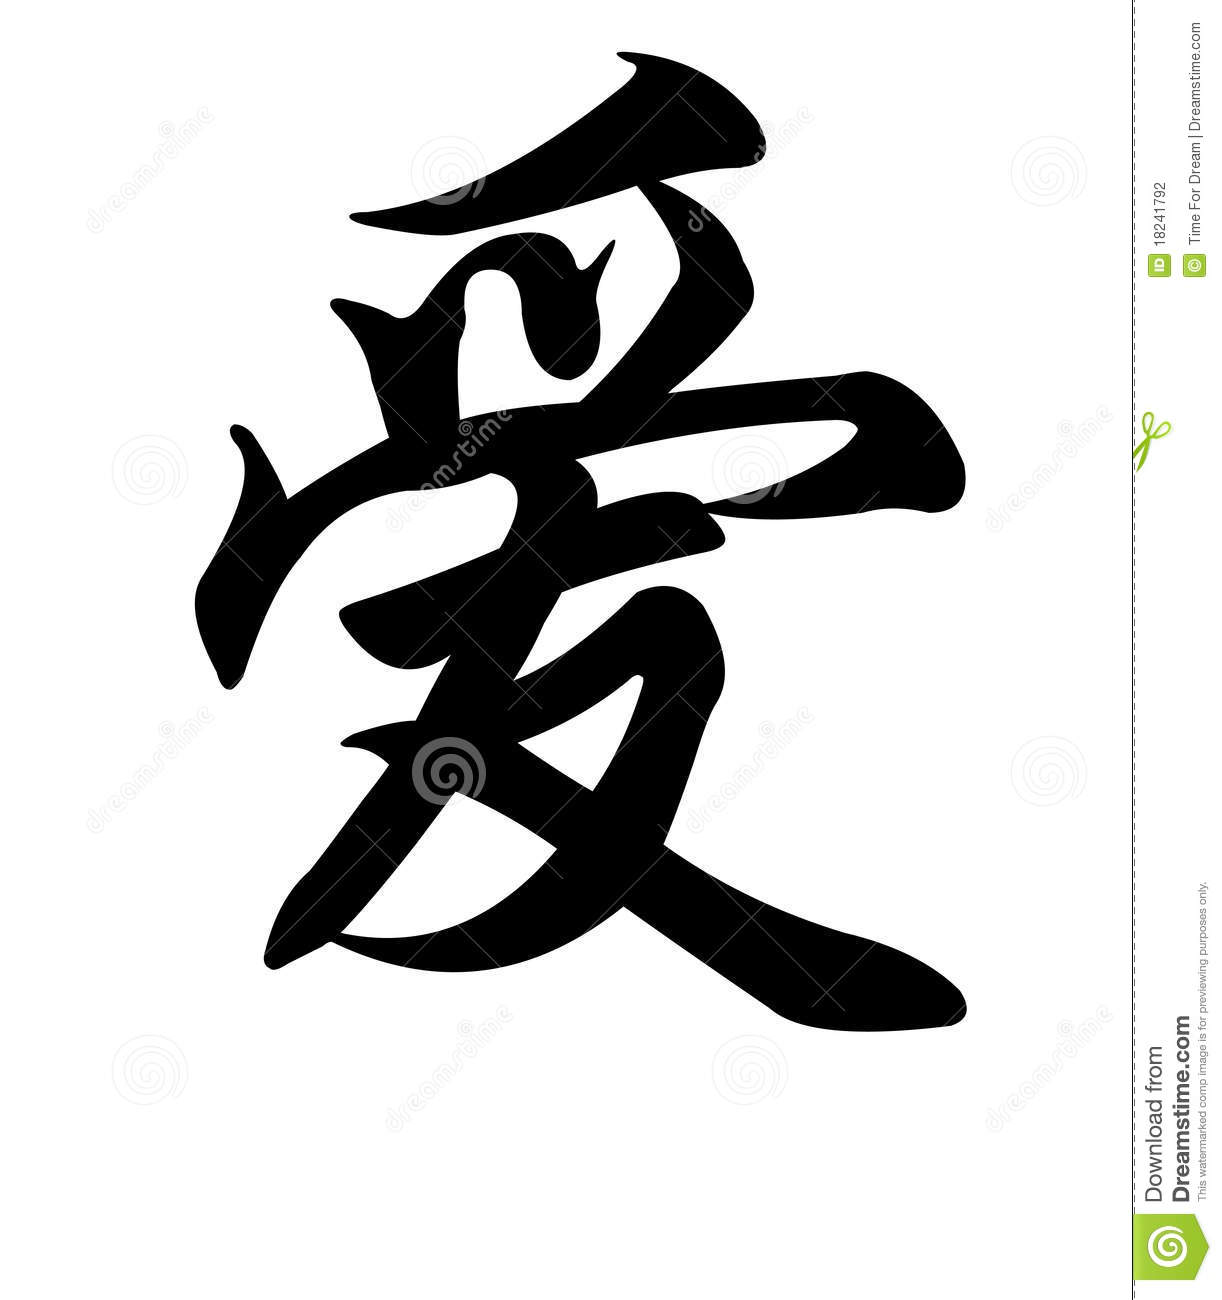 Chinese Character Love Stock Vector Illustration Of Love 18241792